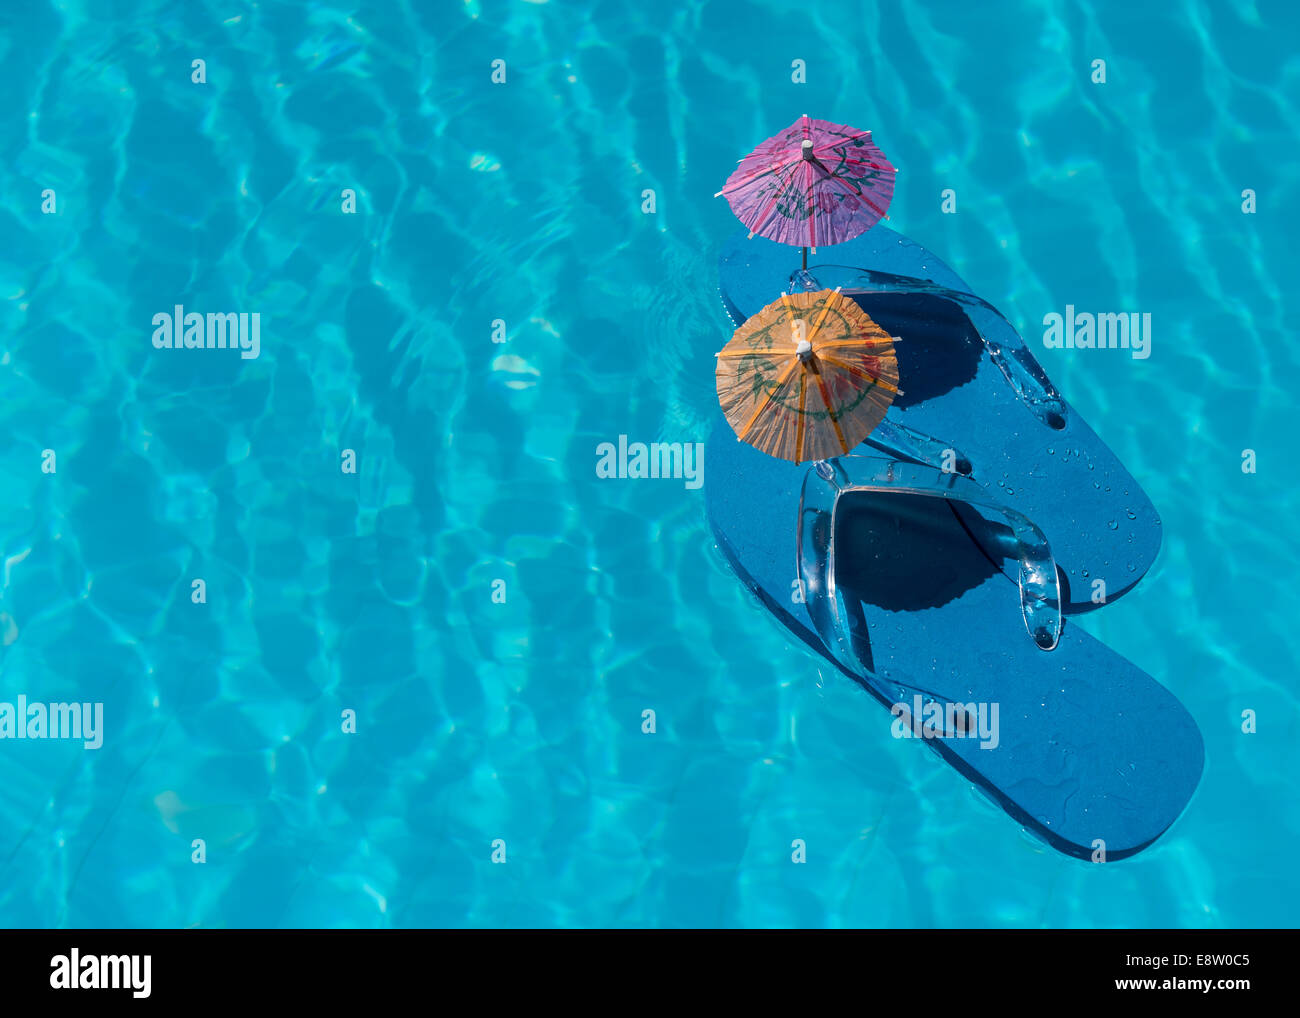 Flip Flop on pool with surface of water background - Stock Image